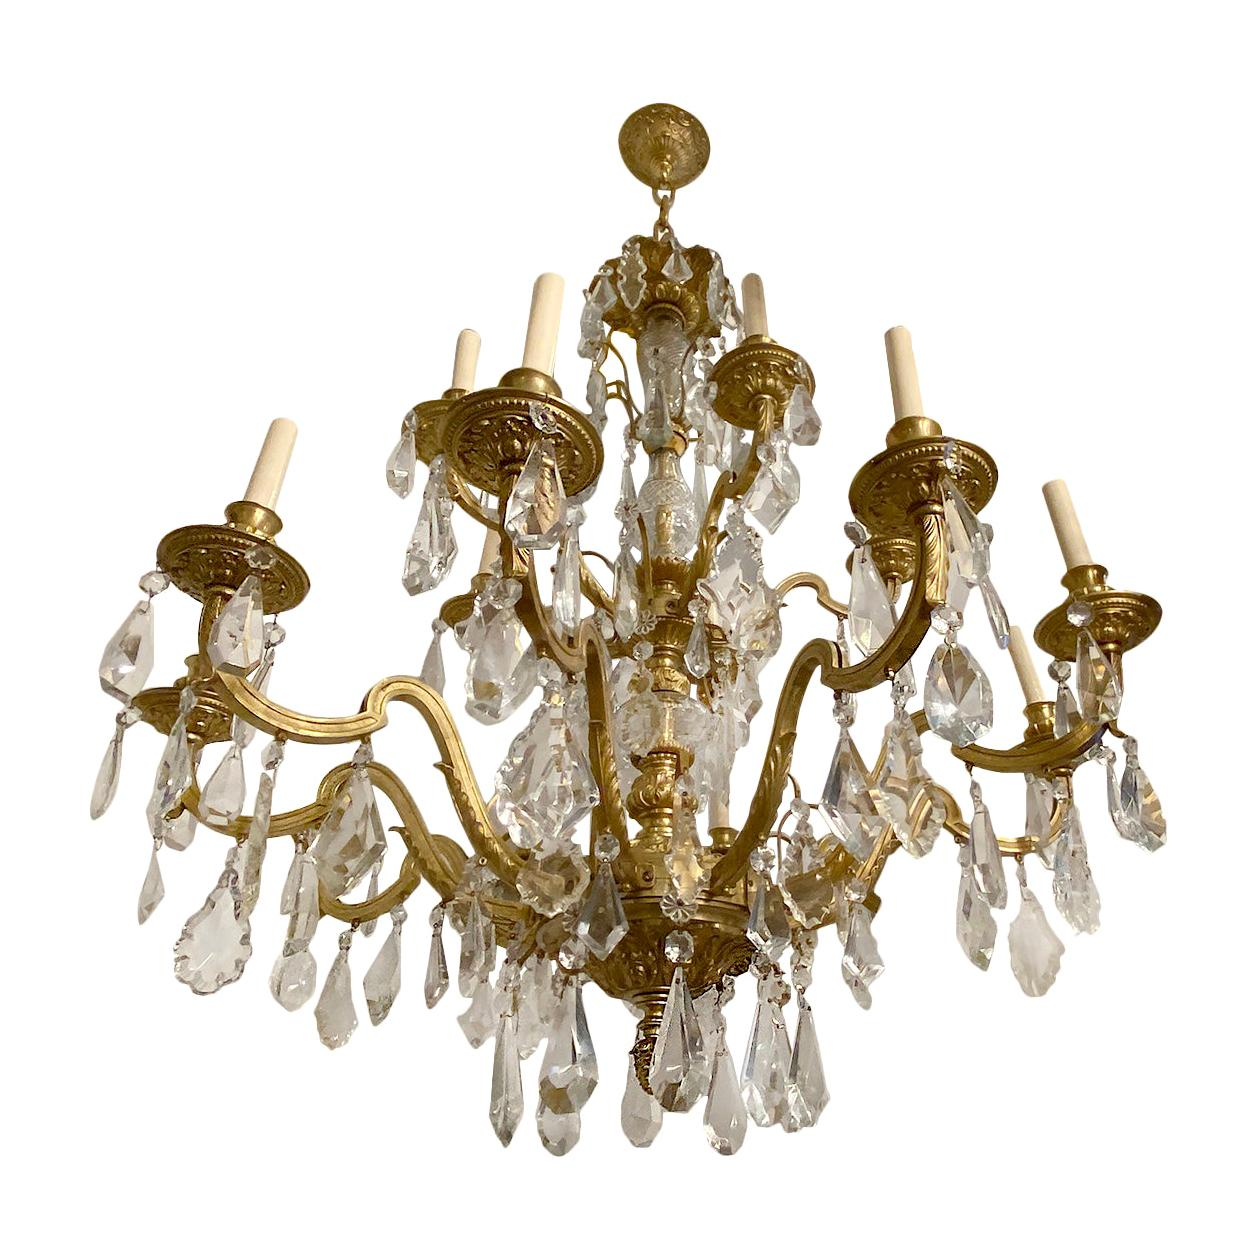 Pair of Neoclassic Bronze Chandeliers, Sold Individually